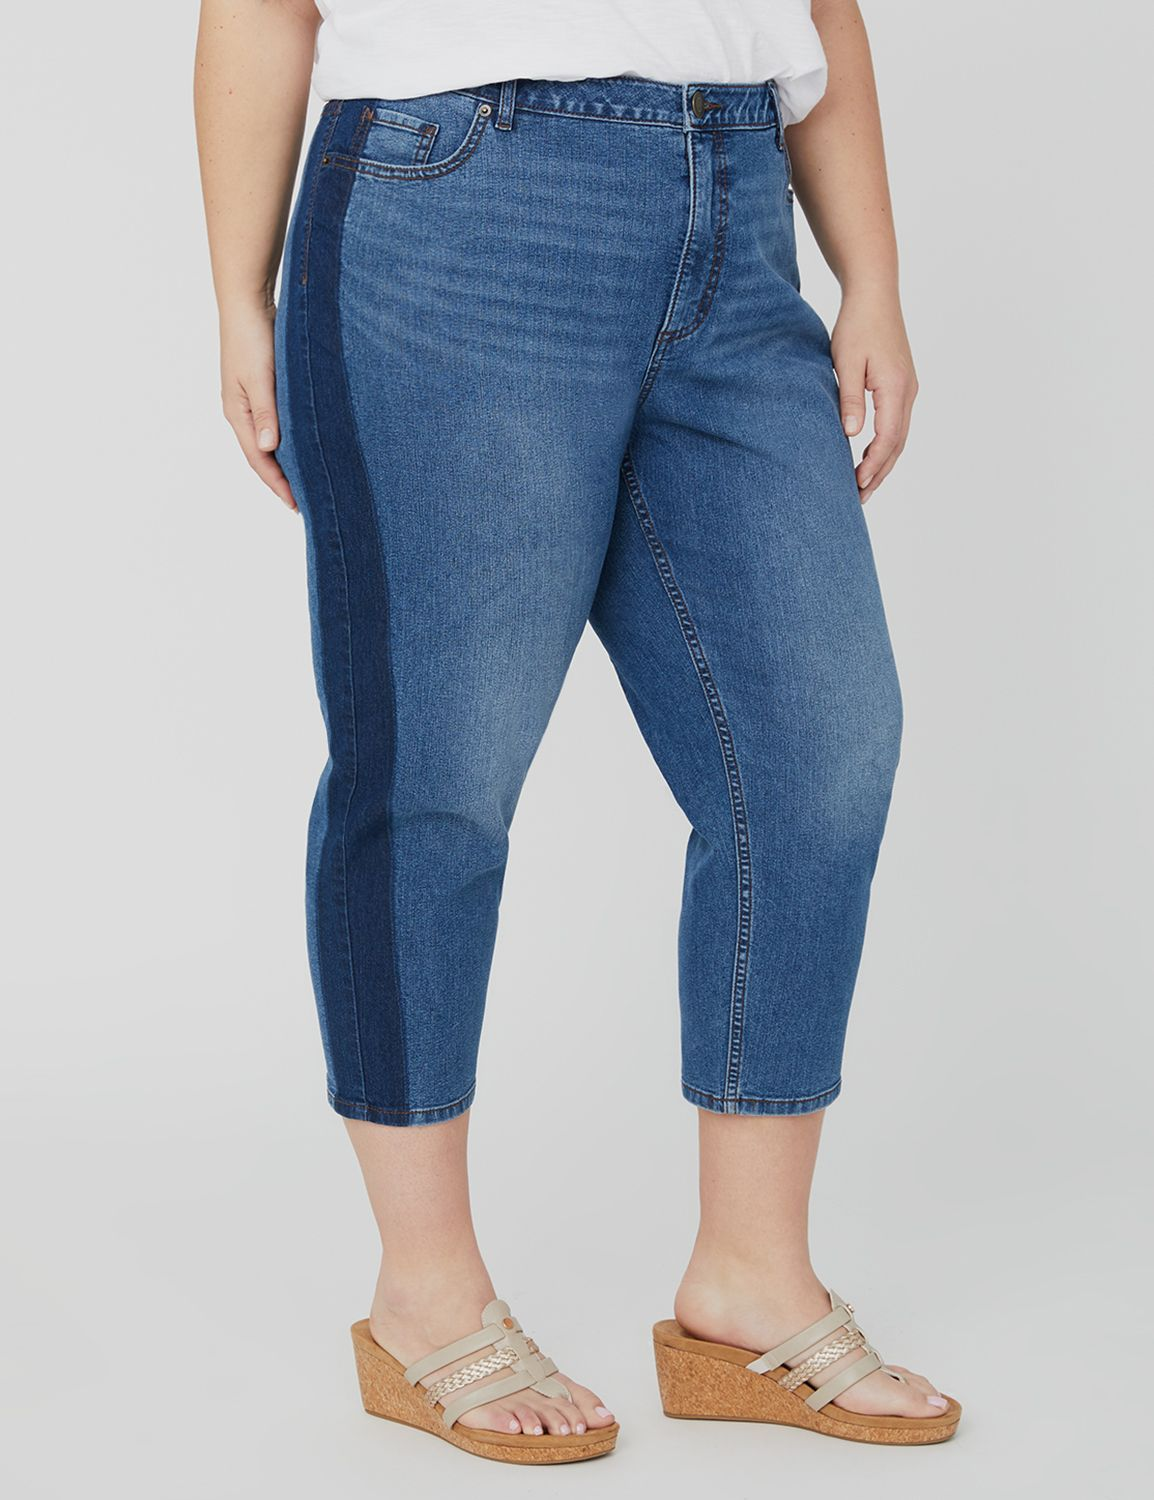 Jean Capri with Dark-Wash Stripe 1088046 2-TONE DENIM WASH ON SIDE S MP-300099568